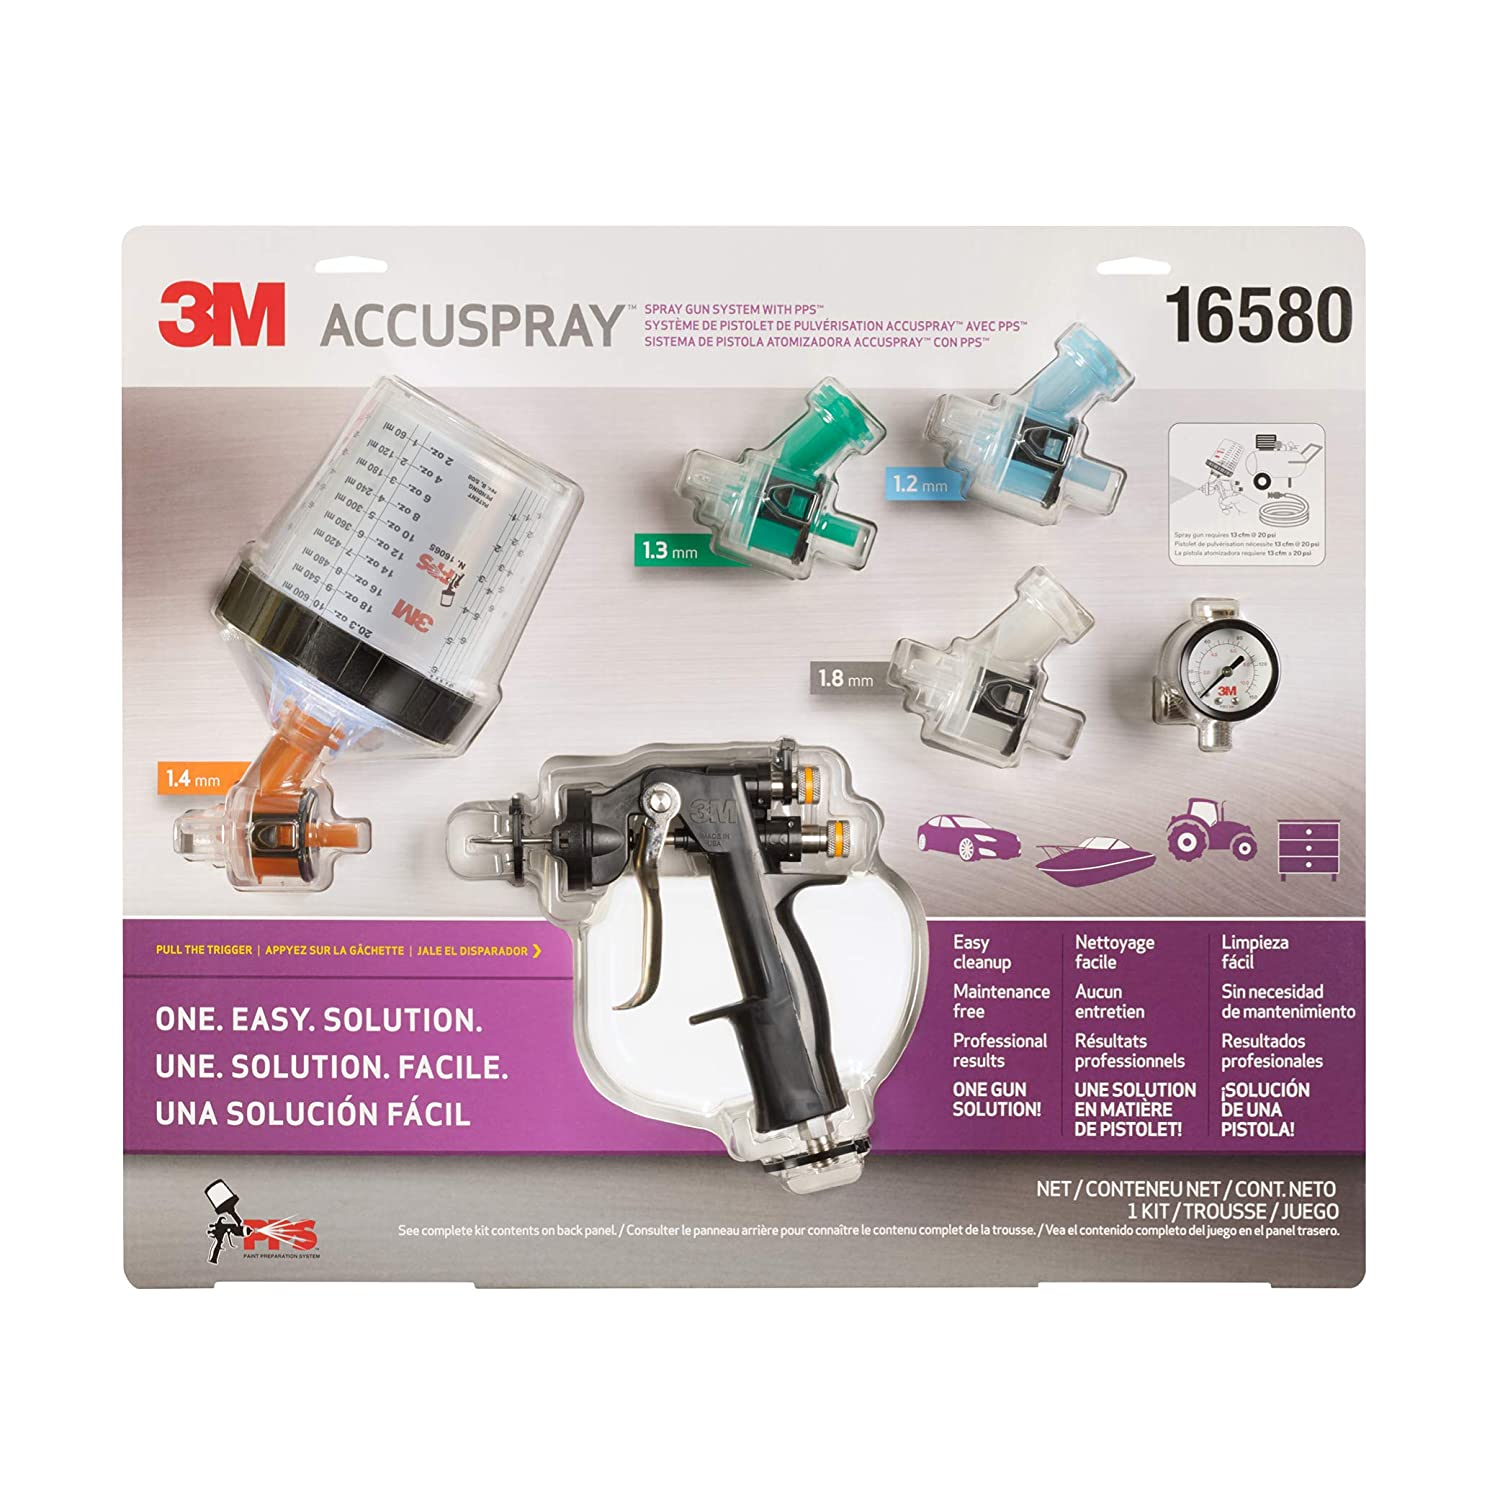 3M 16580 1 Pack Accuspray Spray Gun System with Standard PPS